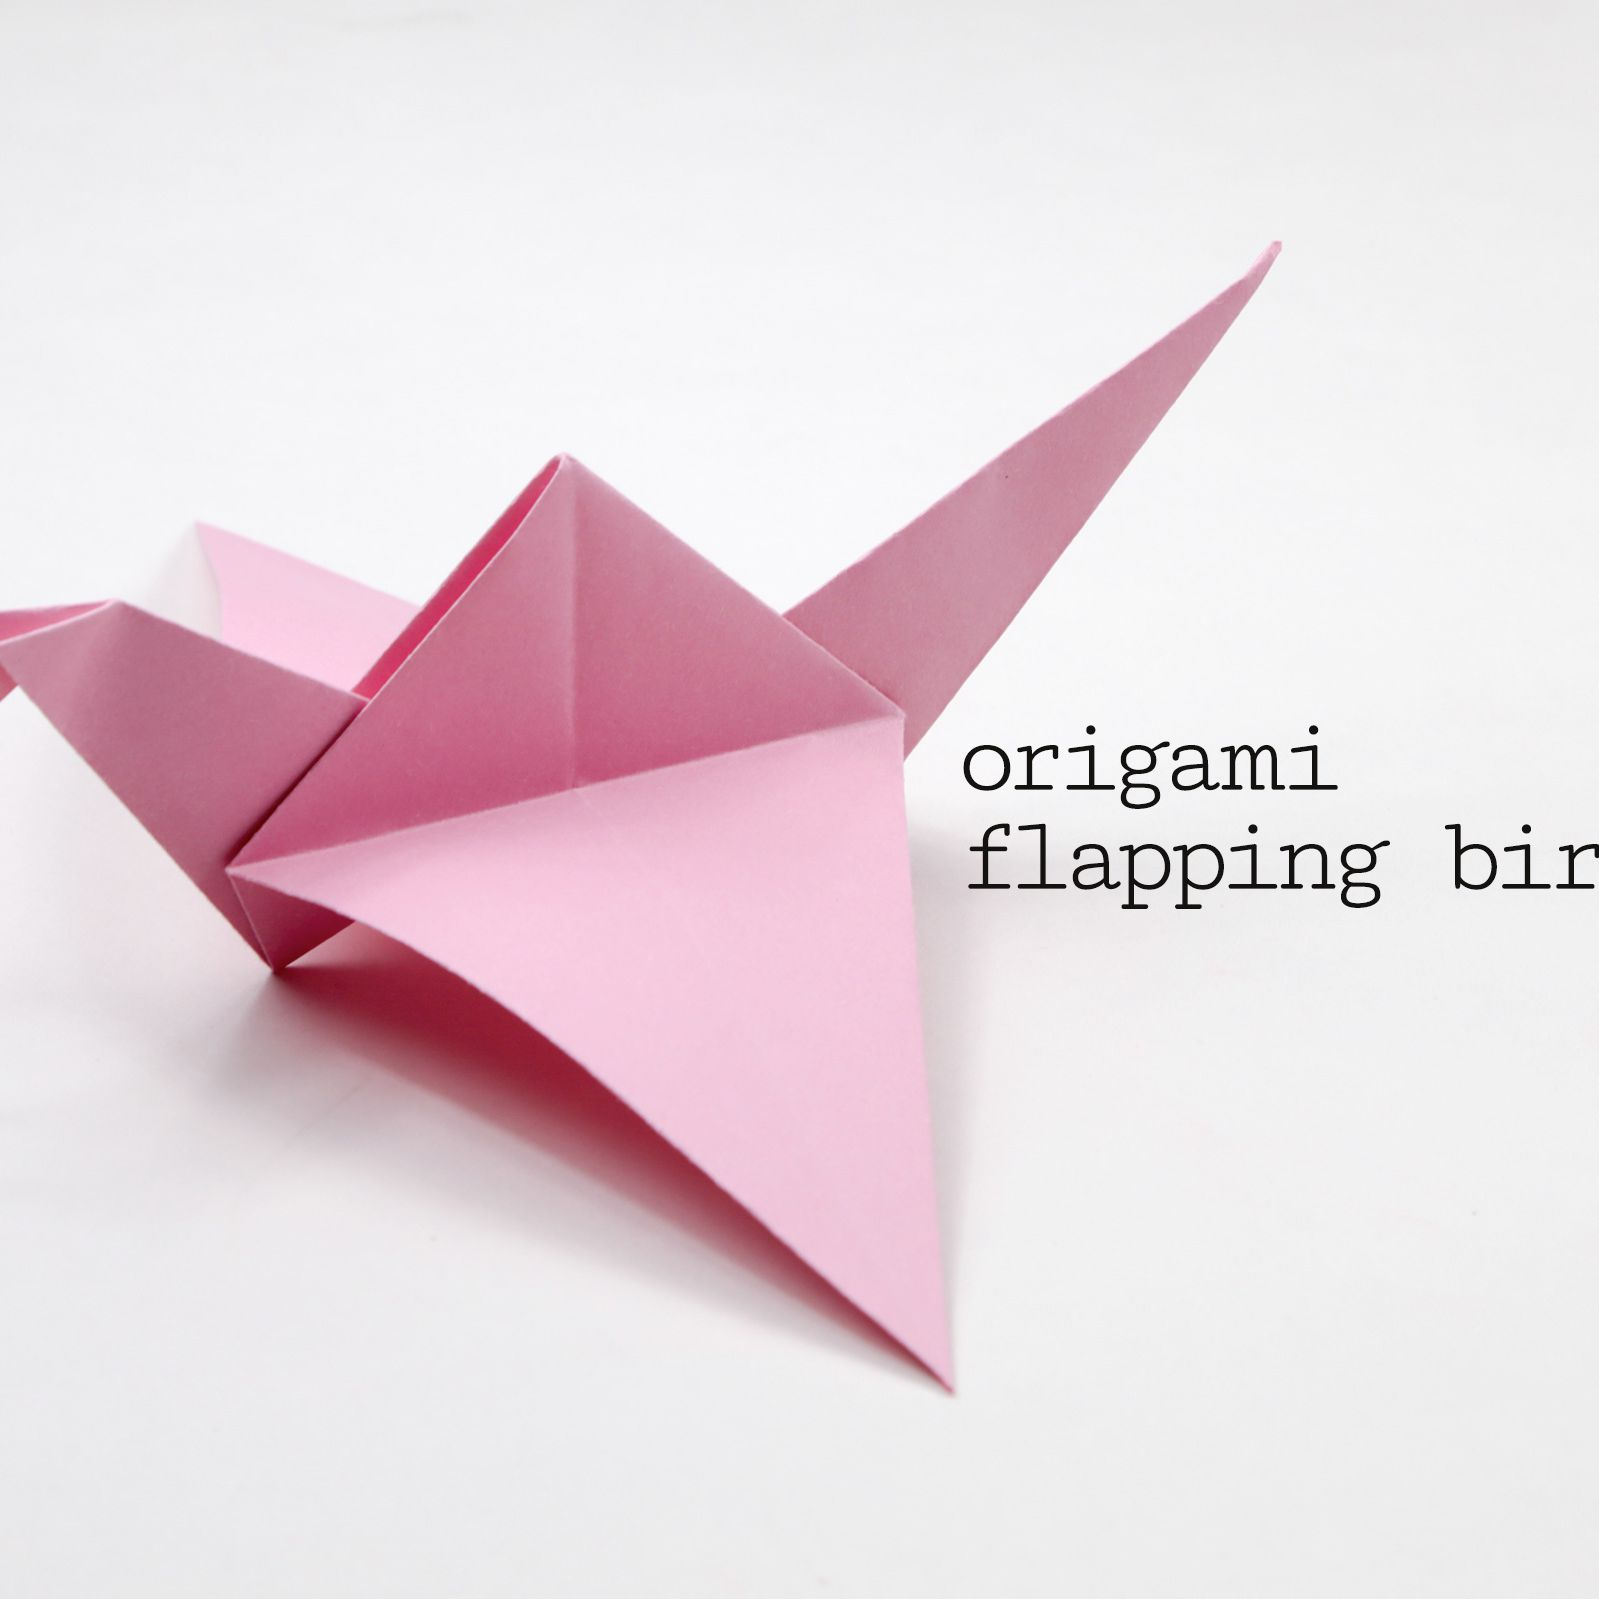 Origami Bird Instructions Stock Illustrations – 33 Origami Bird Instructions  Stock Illustrations, Vectors & Clipart - Dreamstime | 1599x1599